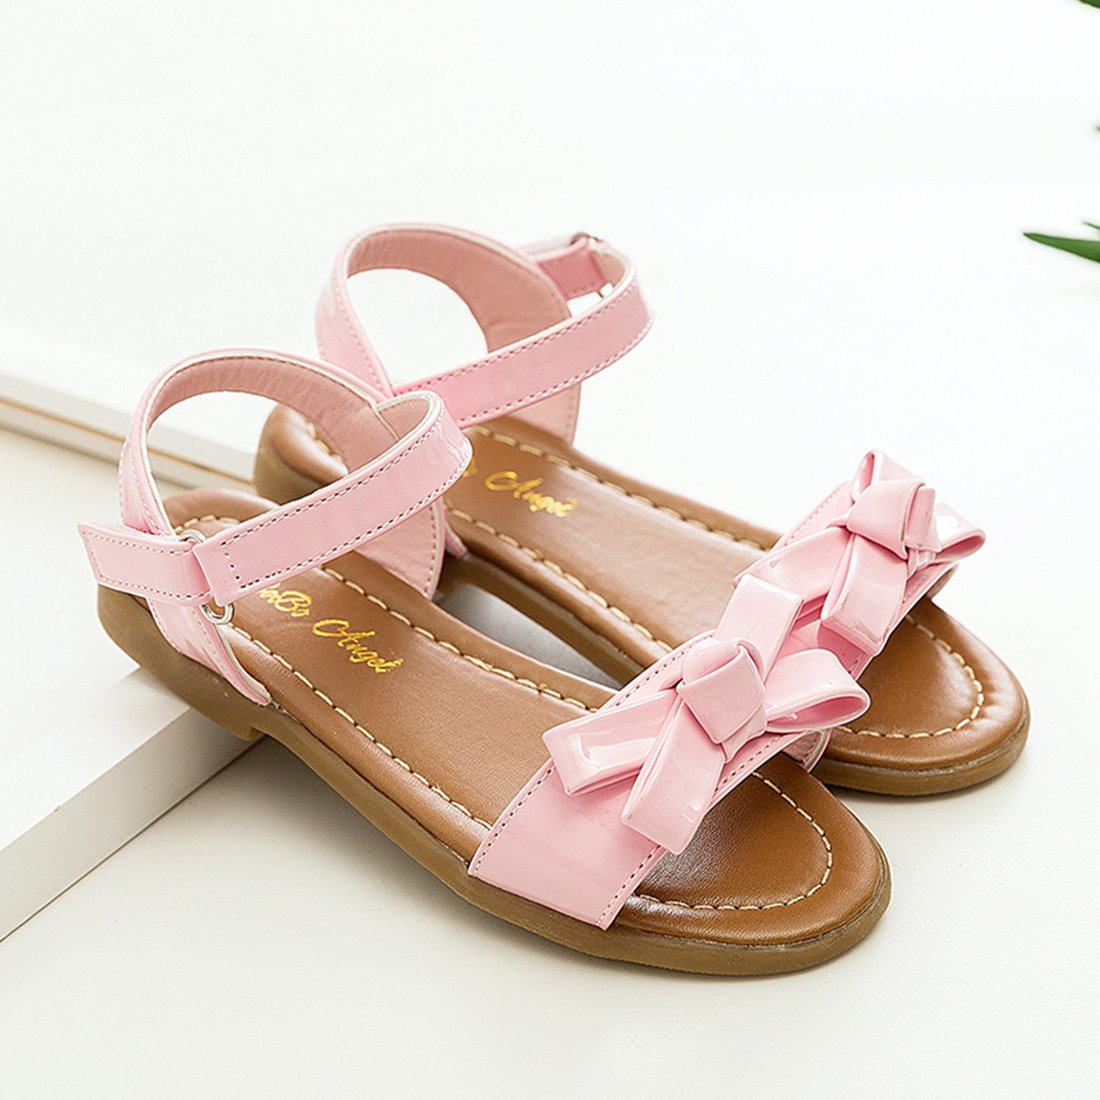 Toddle//Little Kid YIBLBOX Girls Open Toe 2 Strap Flat Sandals Cute Summer Shoes with Bownot